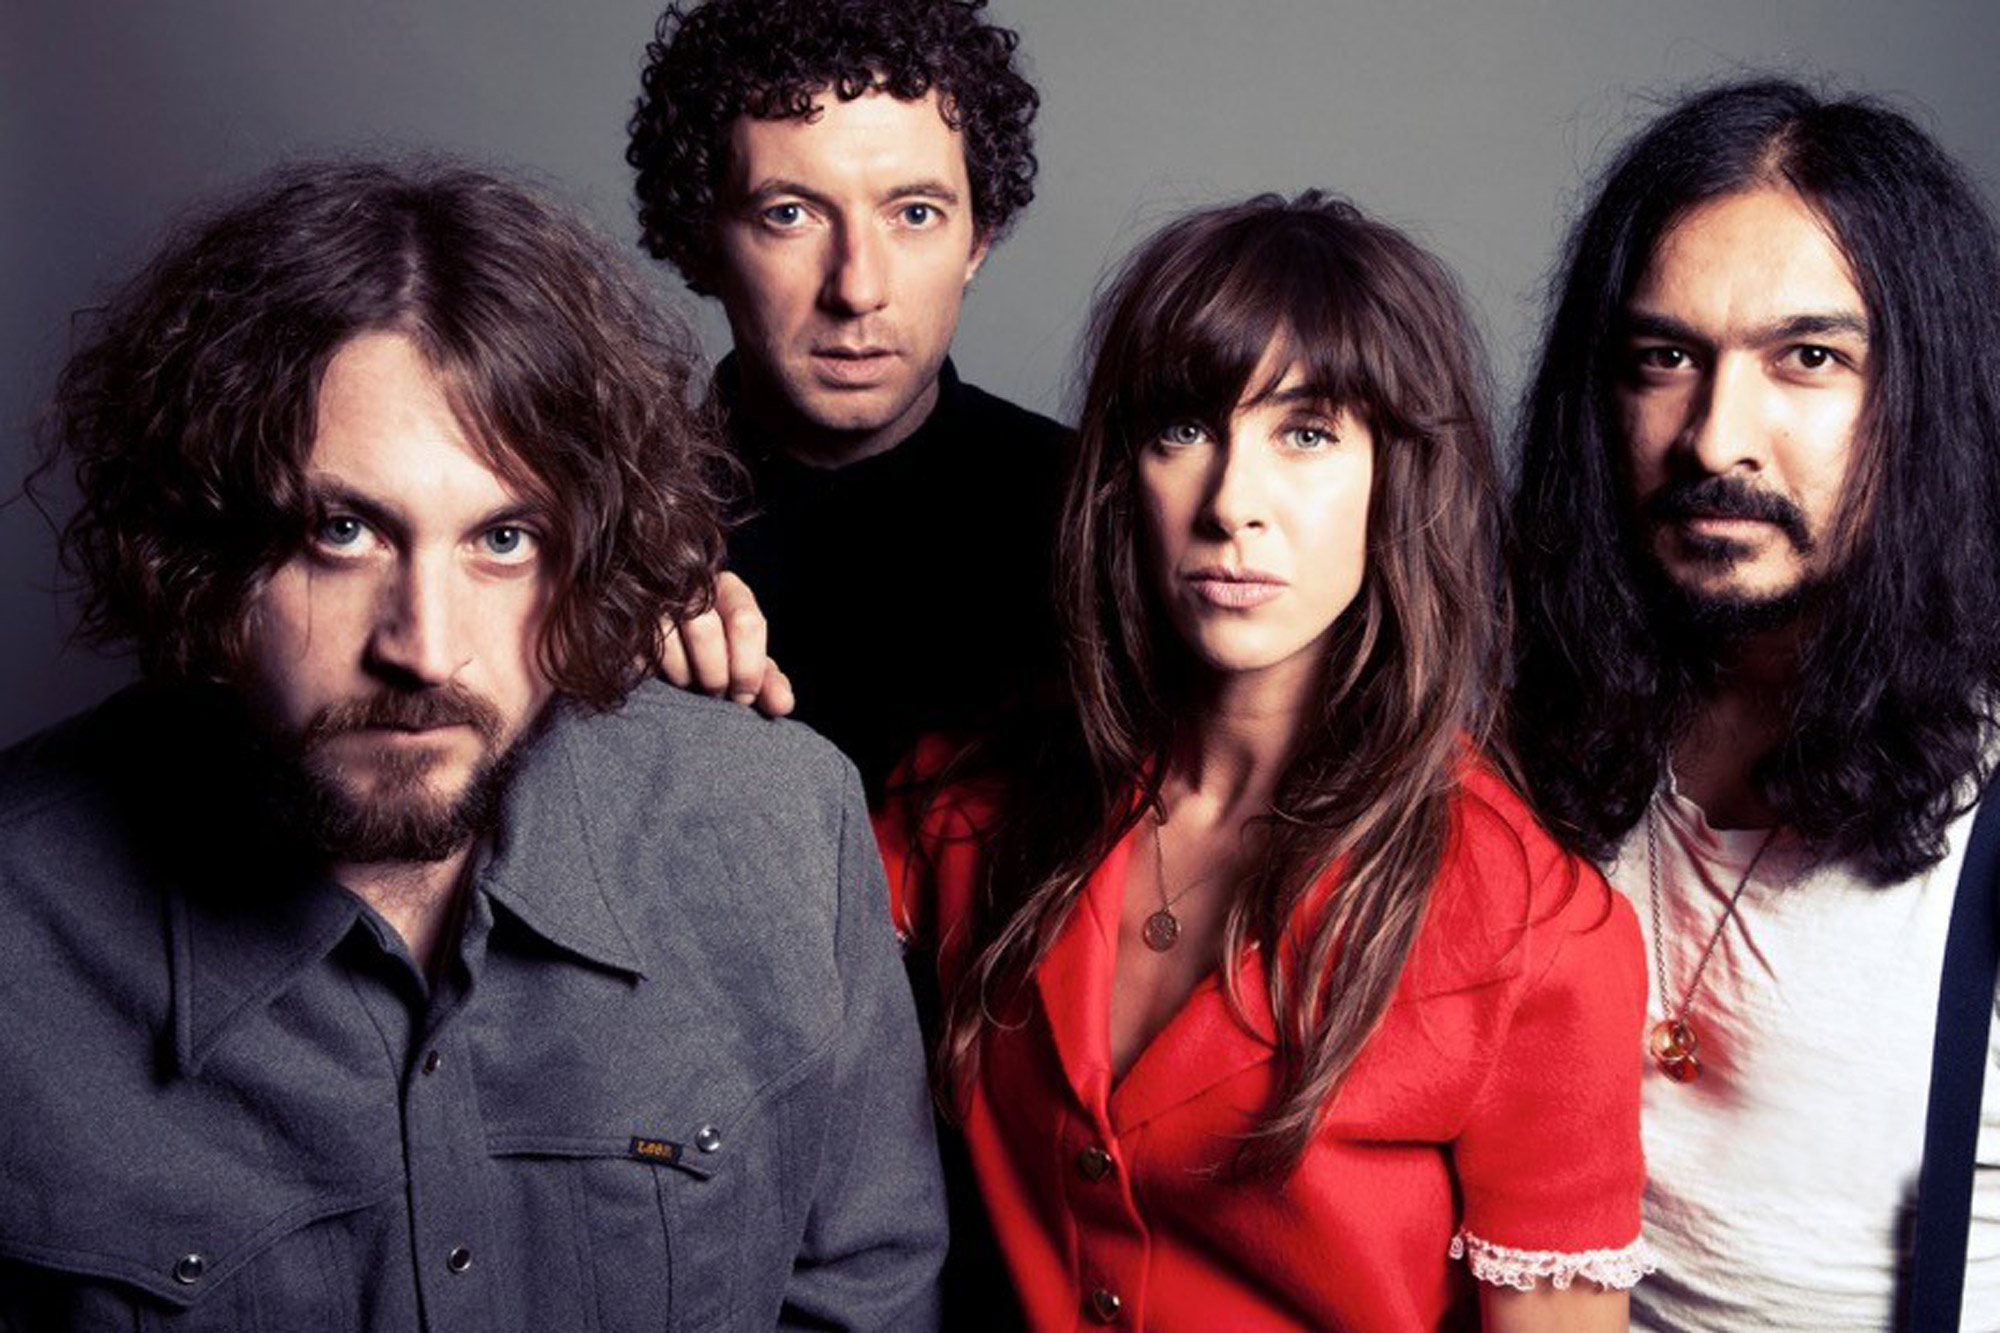 The-Zutons-Headline-Swanbourne-Music-Festival-Family-Friendly-Festival-in-Buckinghamshire.jpg